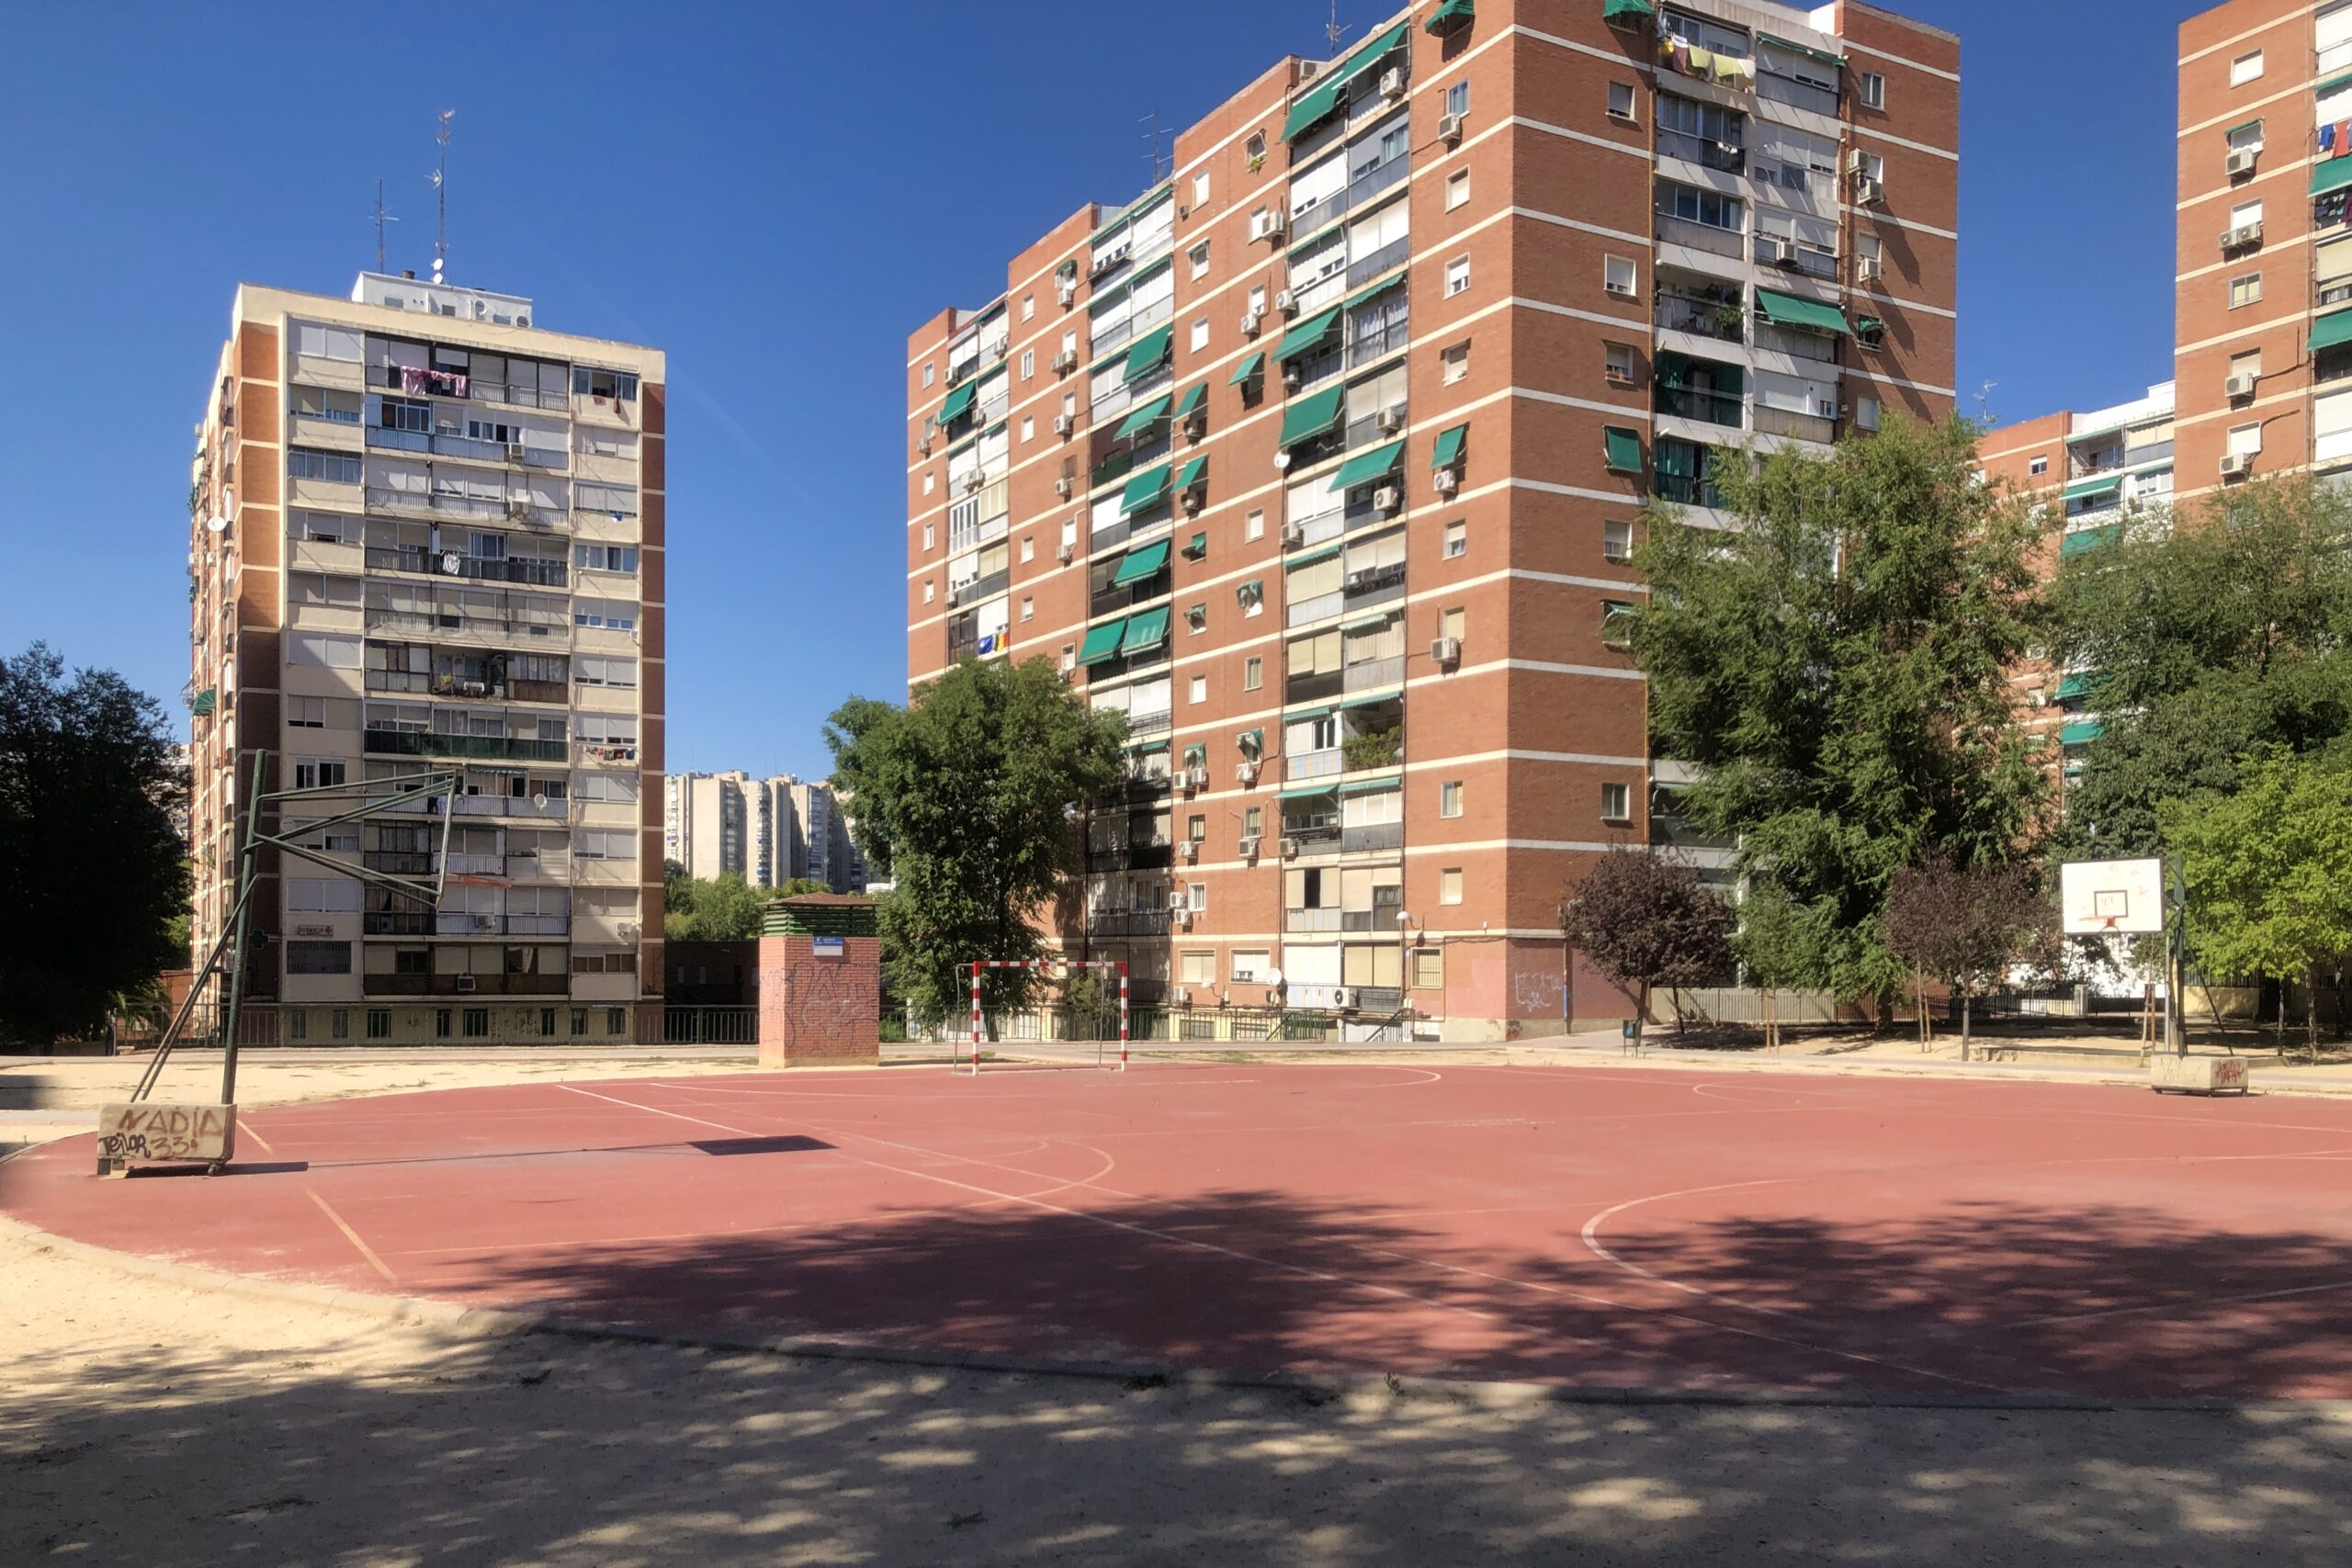 A baseball court in between blocks of flats.